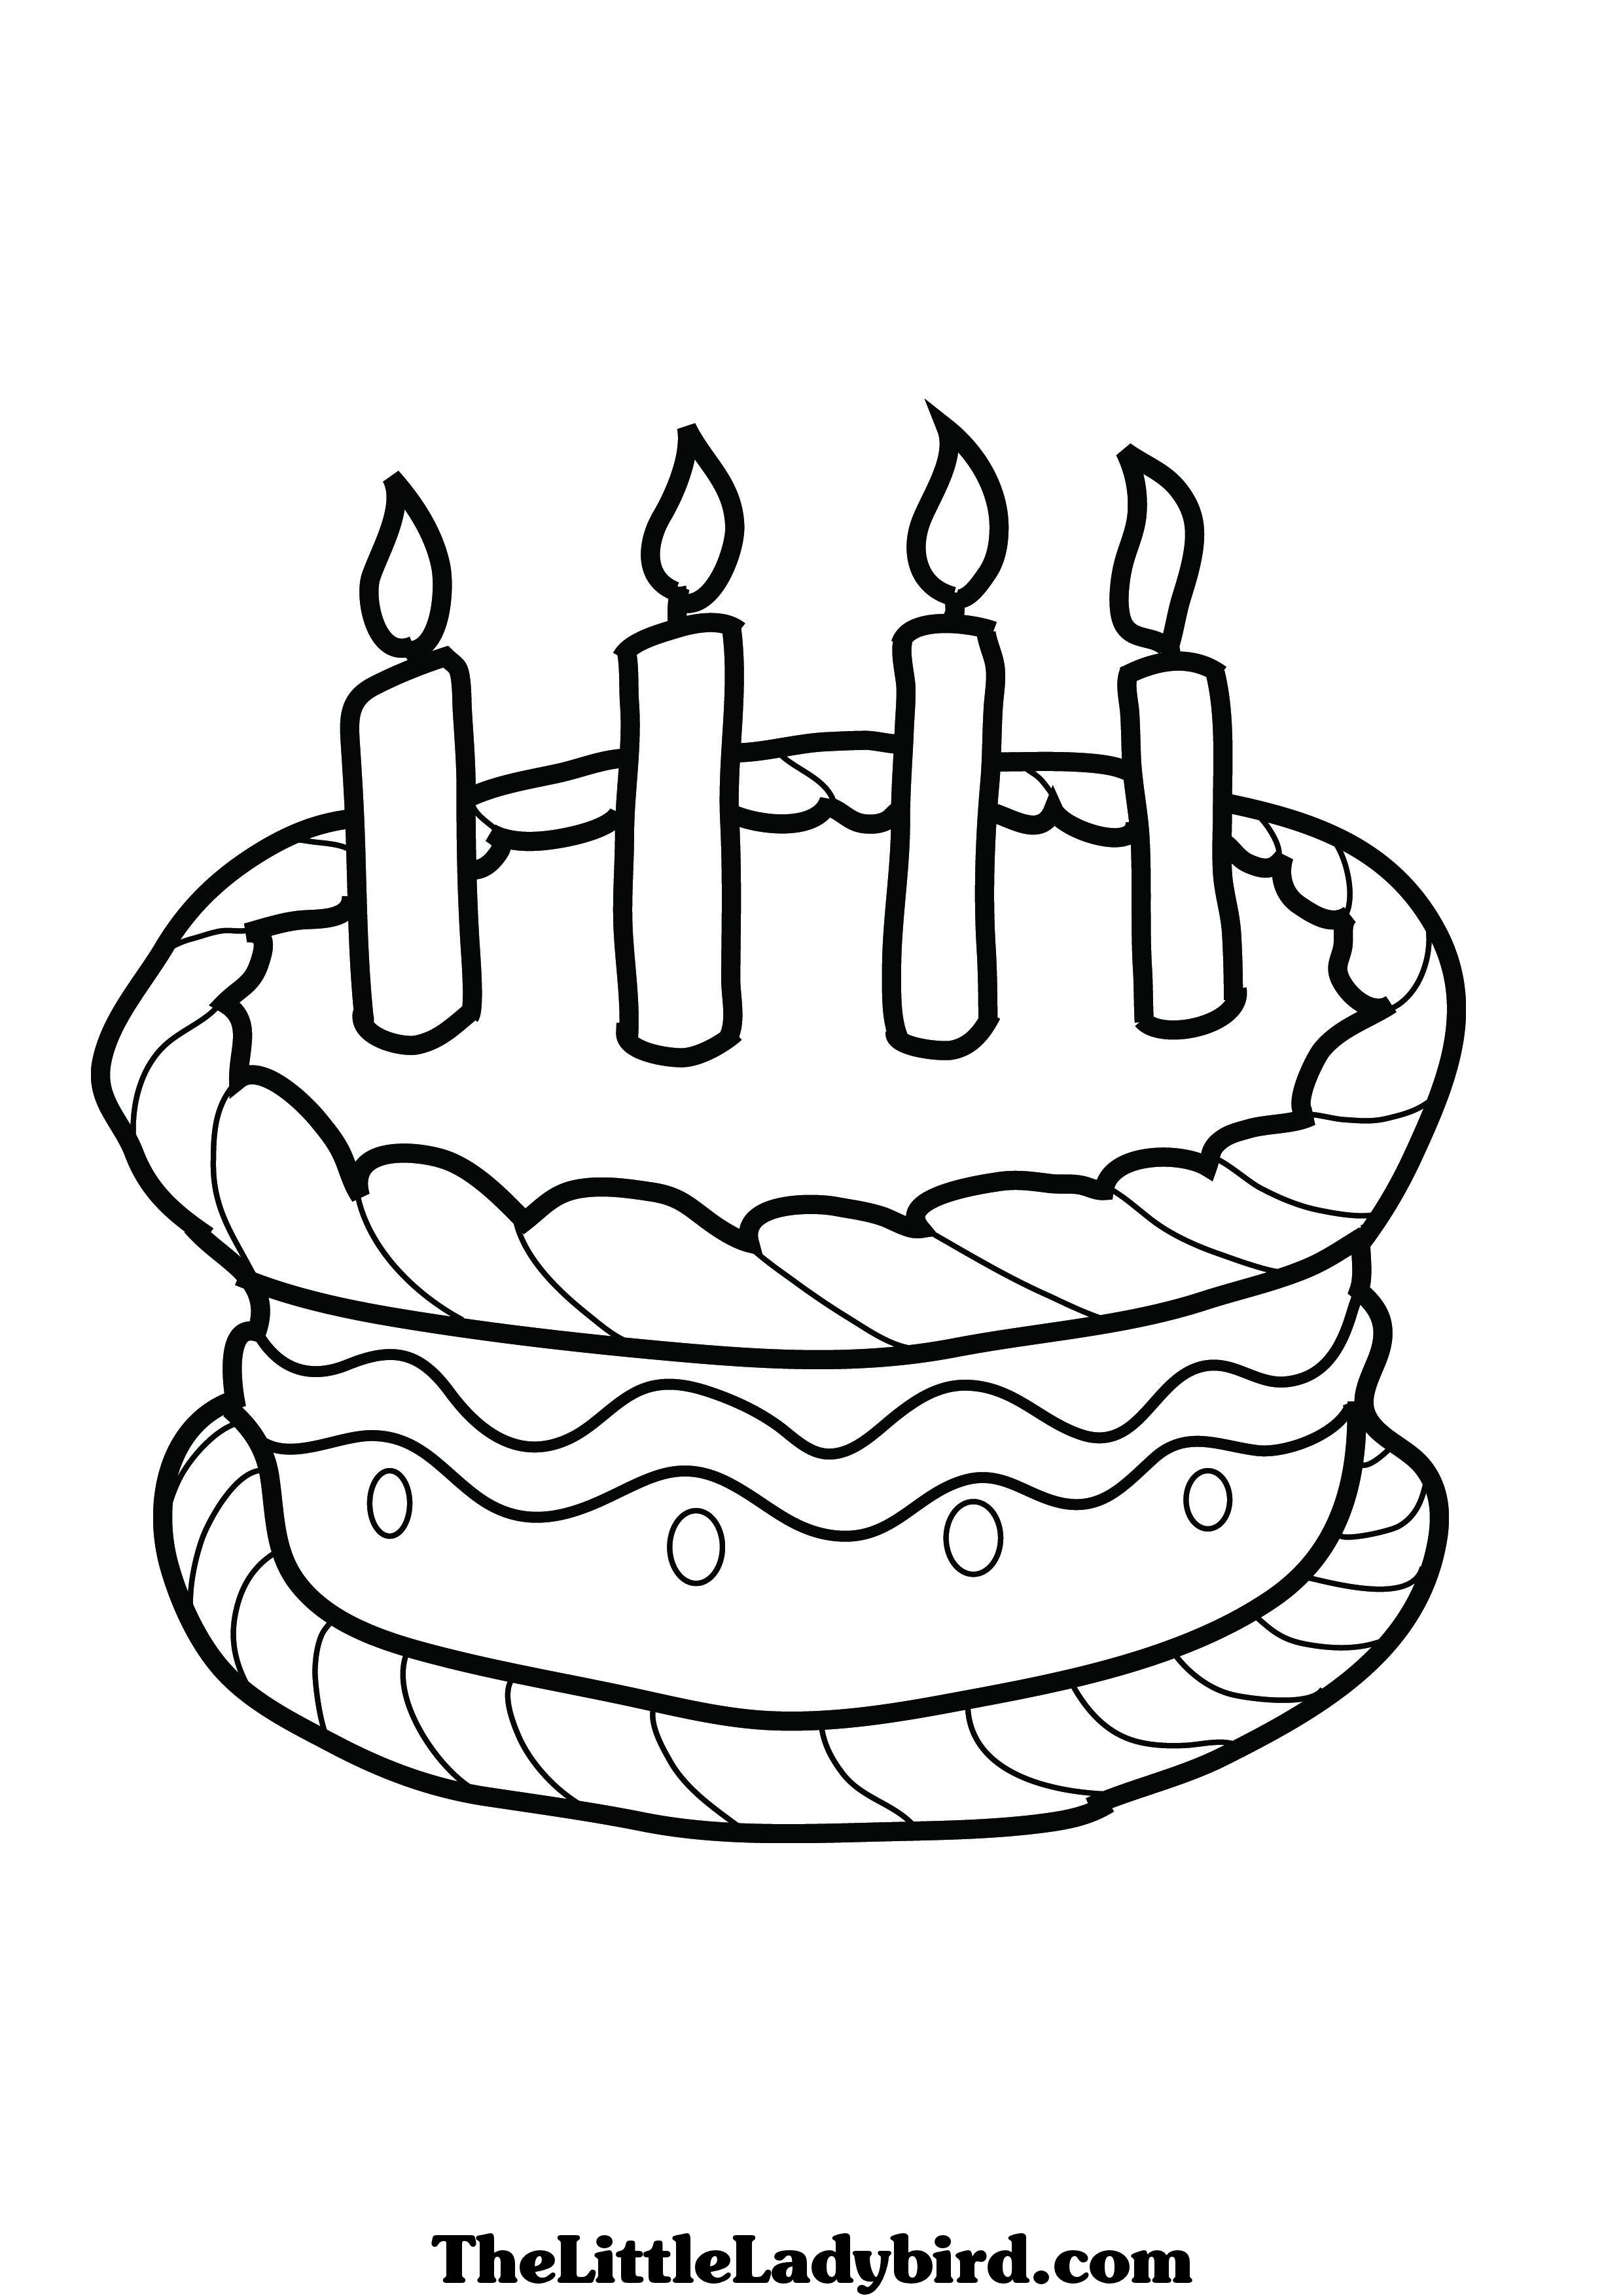 2480x3508 Birthday Cake Coloring Pages Free Gallery